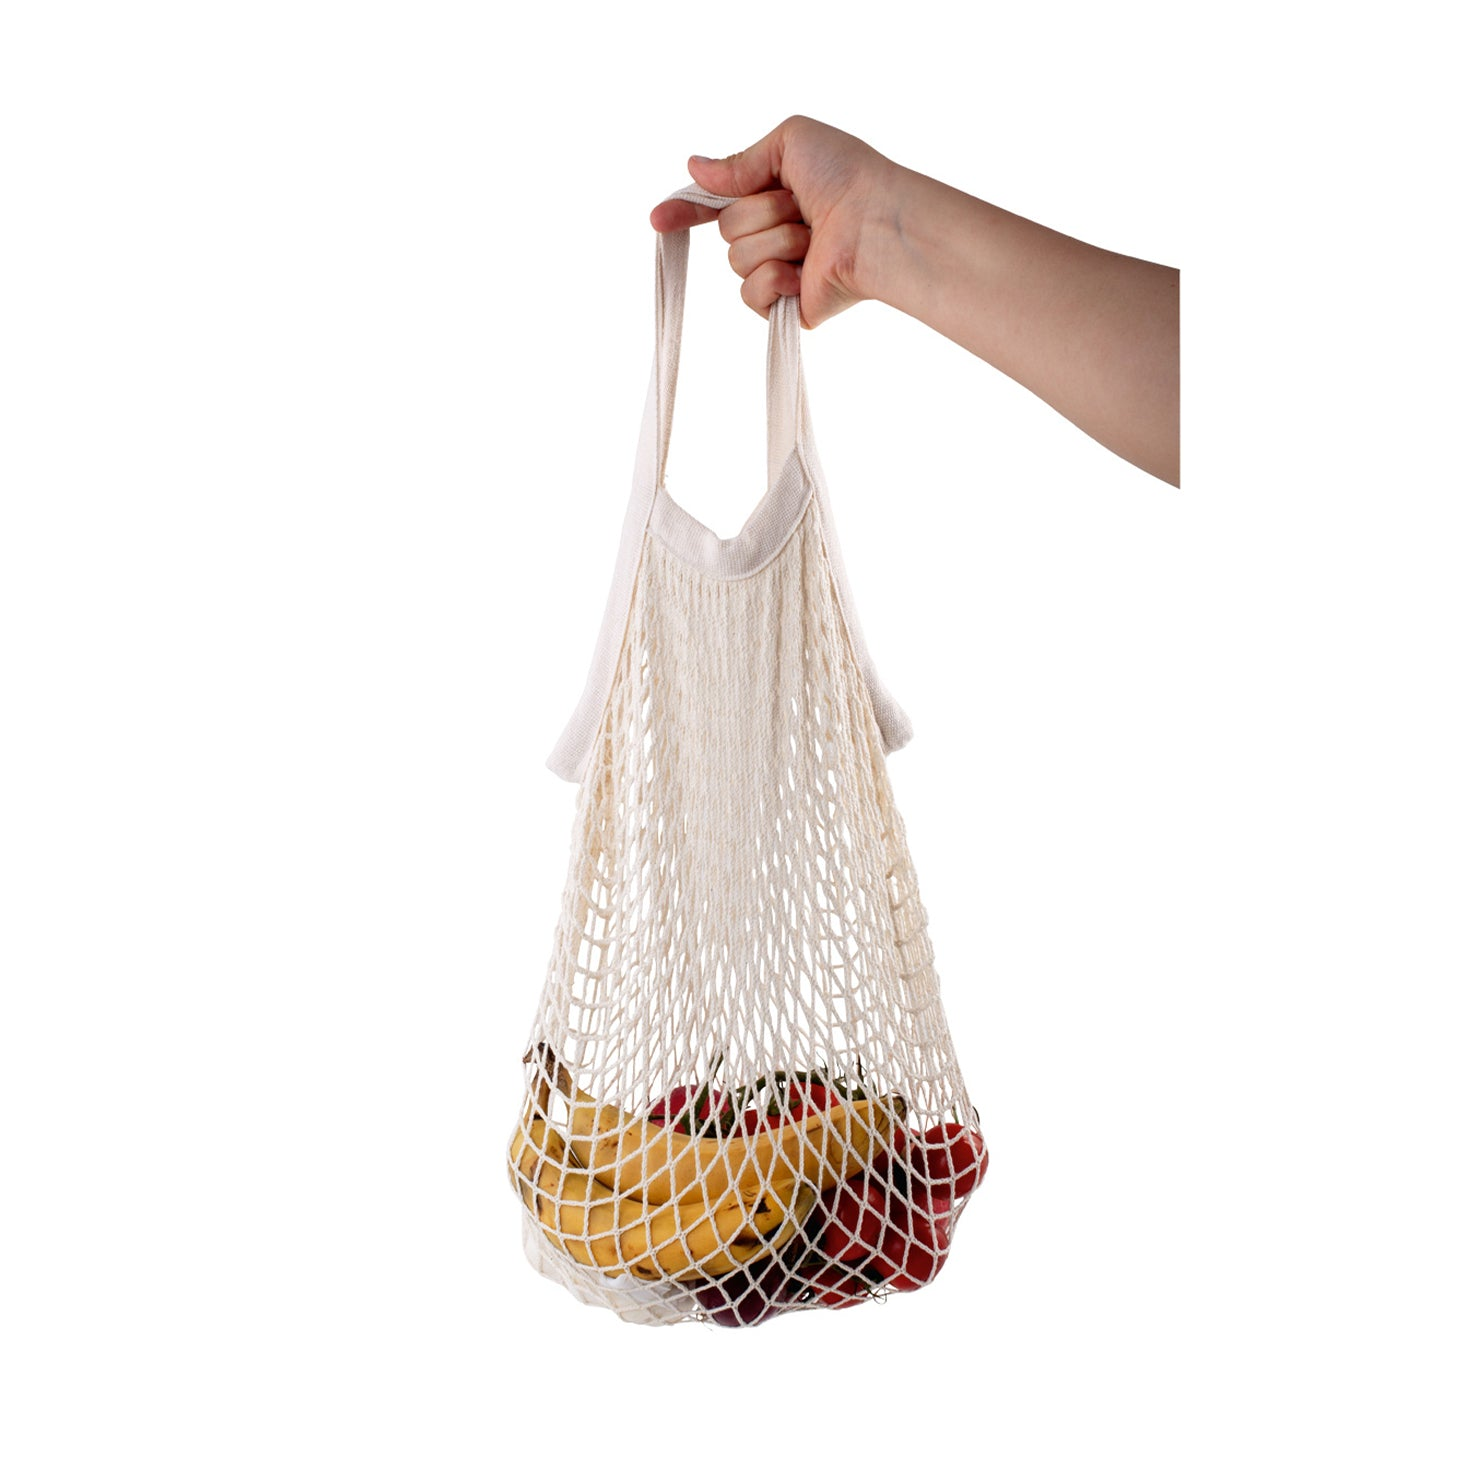 Redecker Natural Weave Shopping Bag